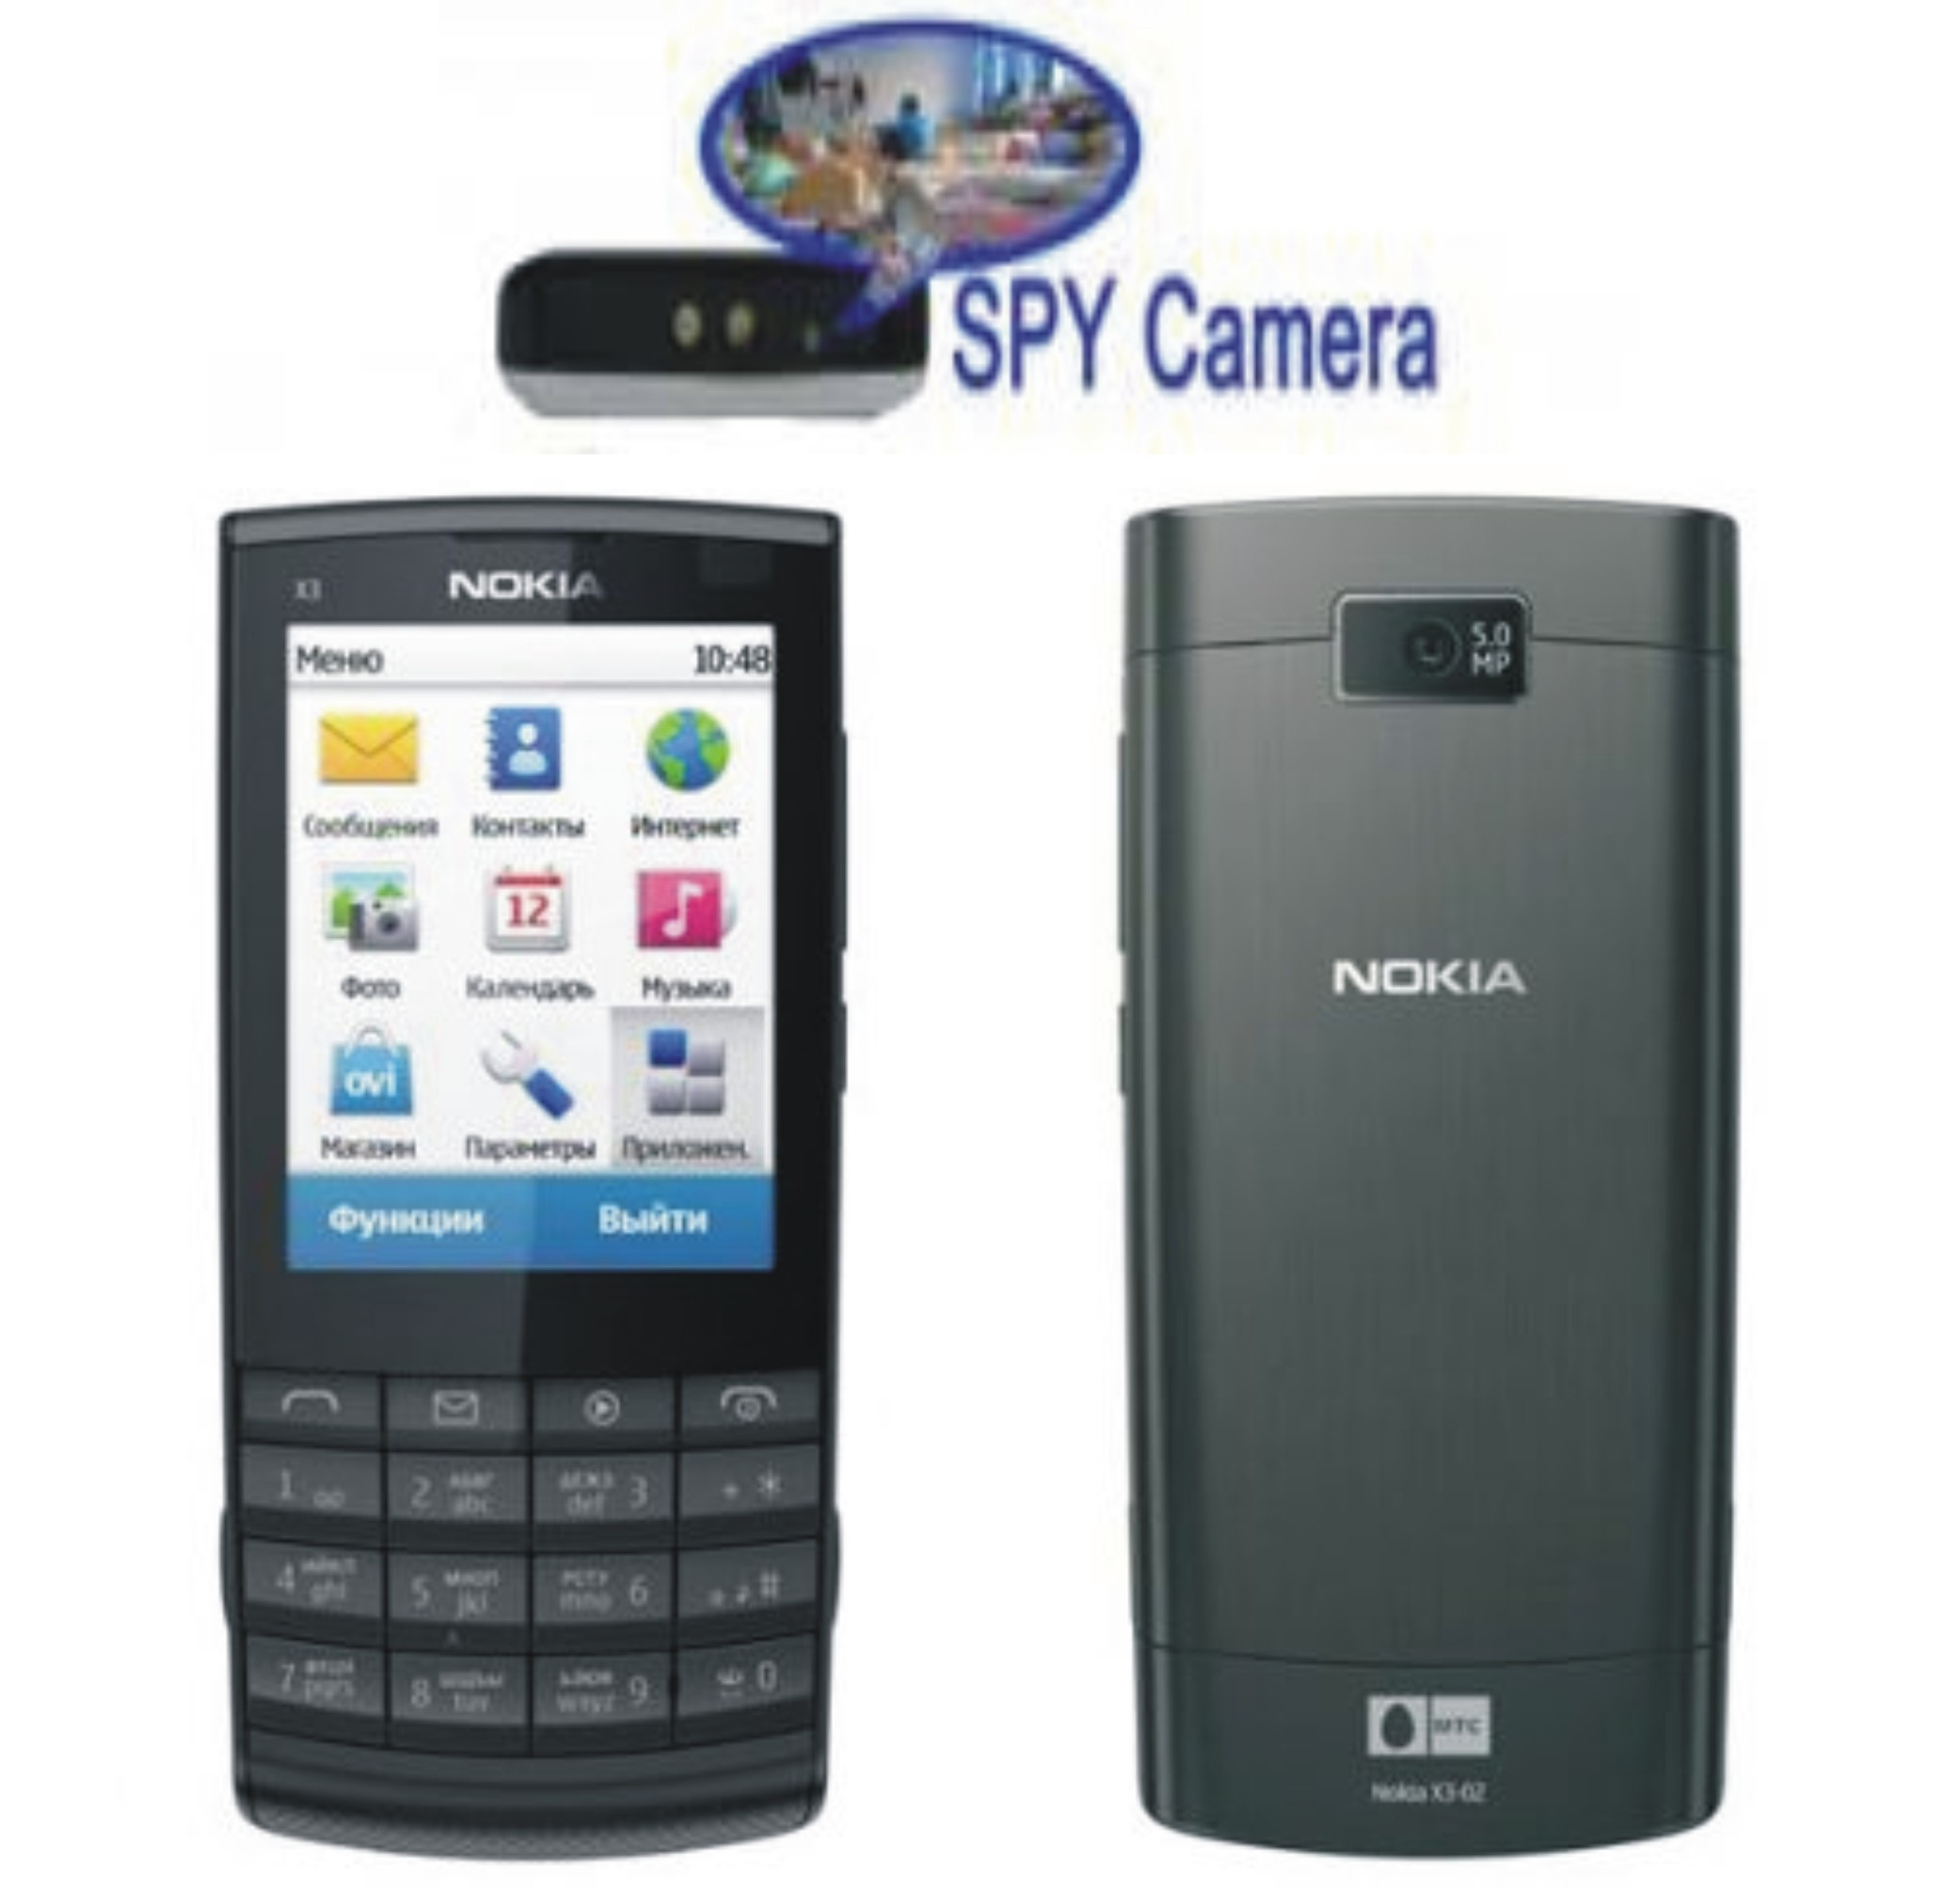 Spy Camera In Nokia Phone Touch Screen In Rajouri